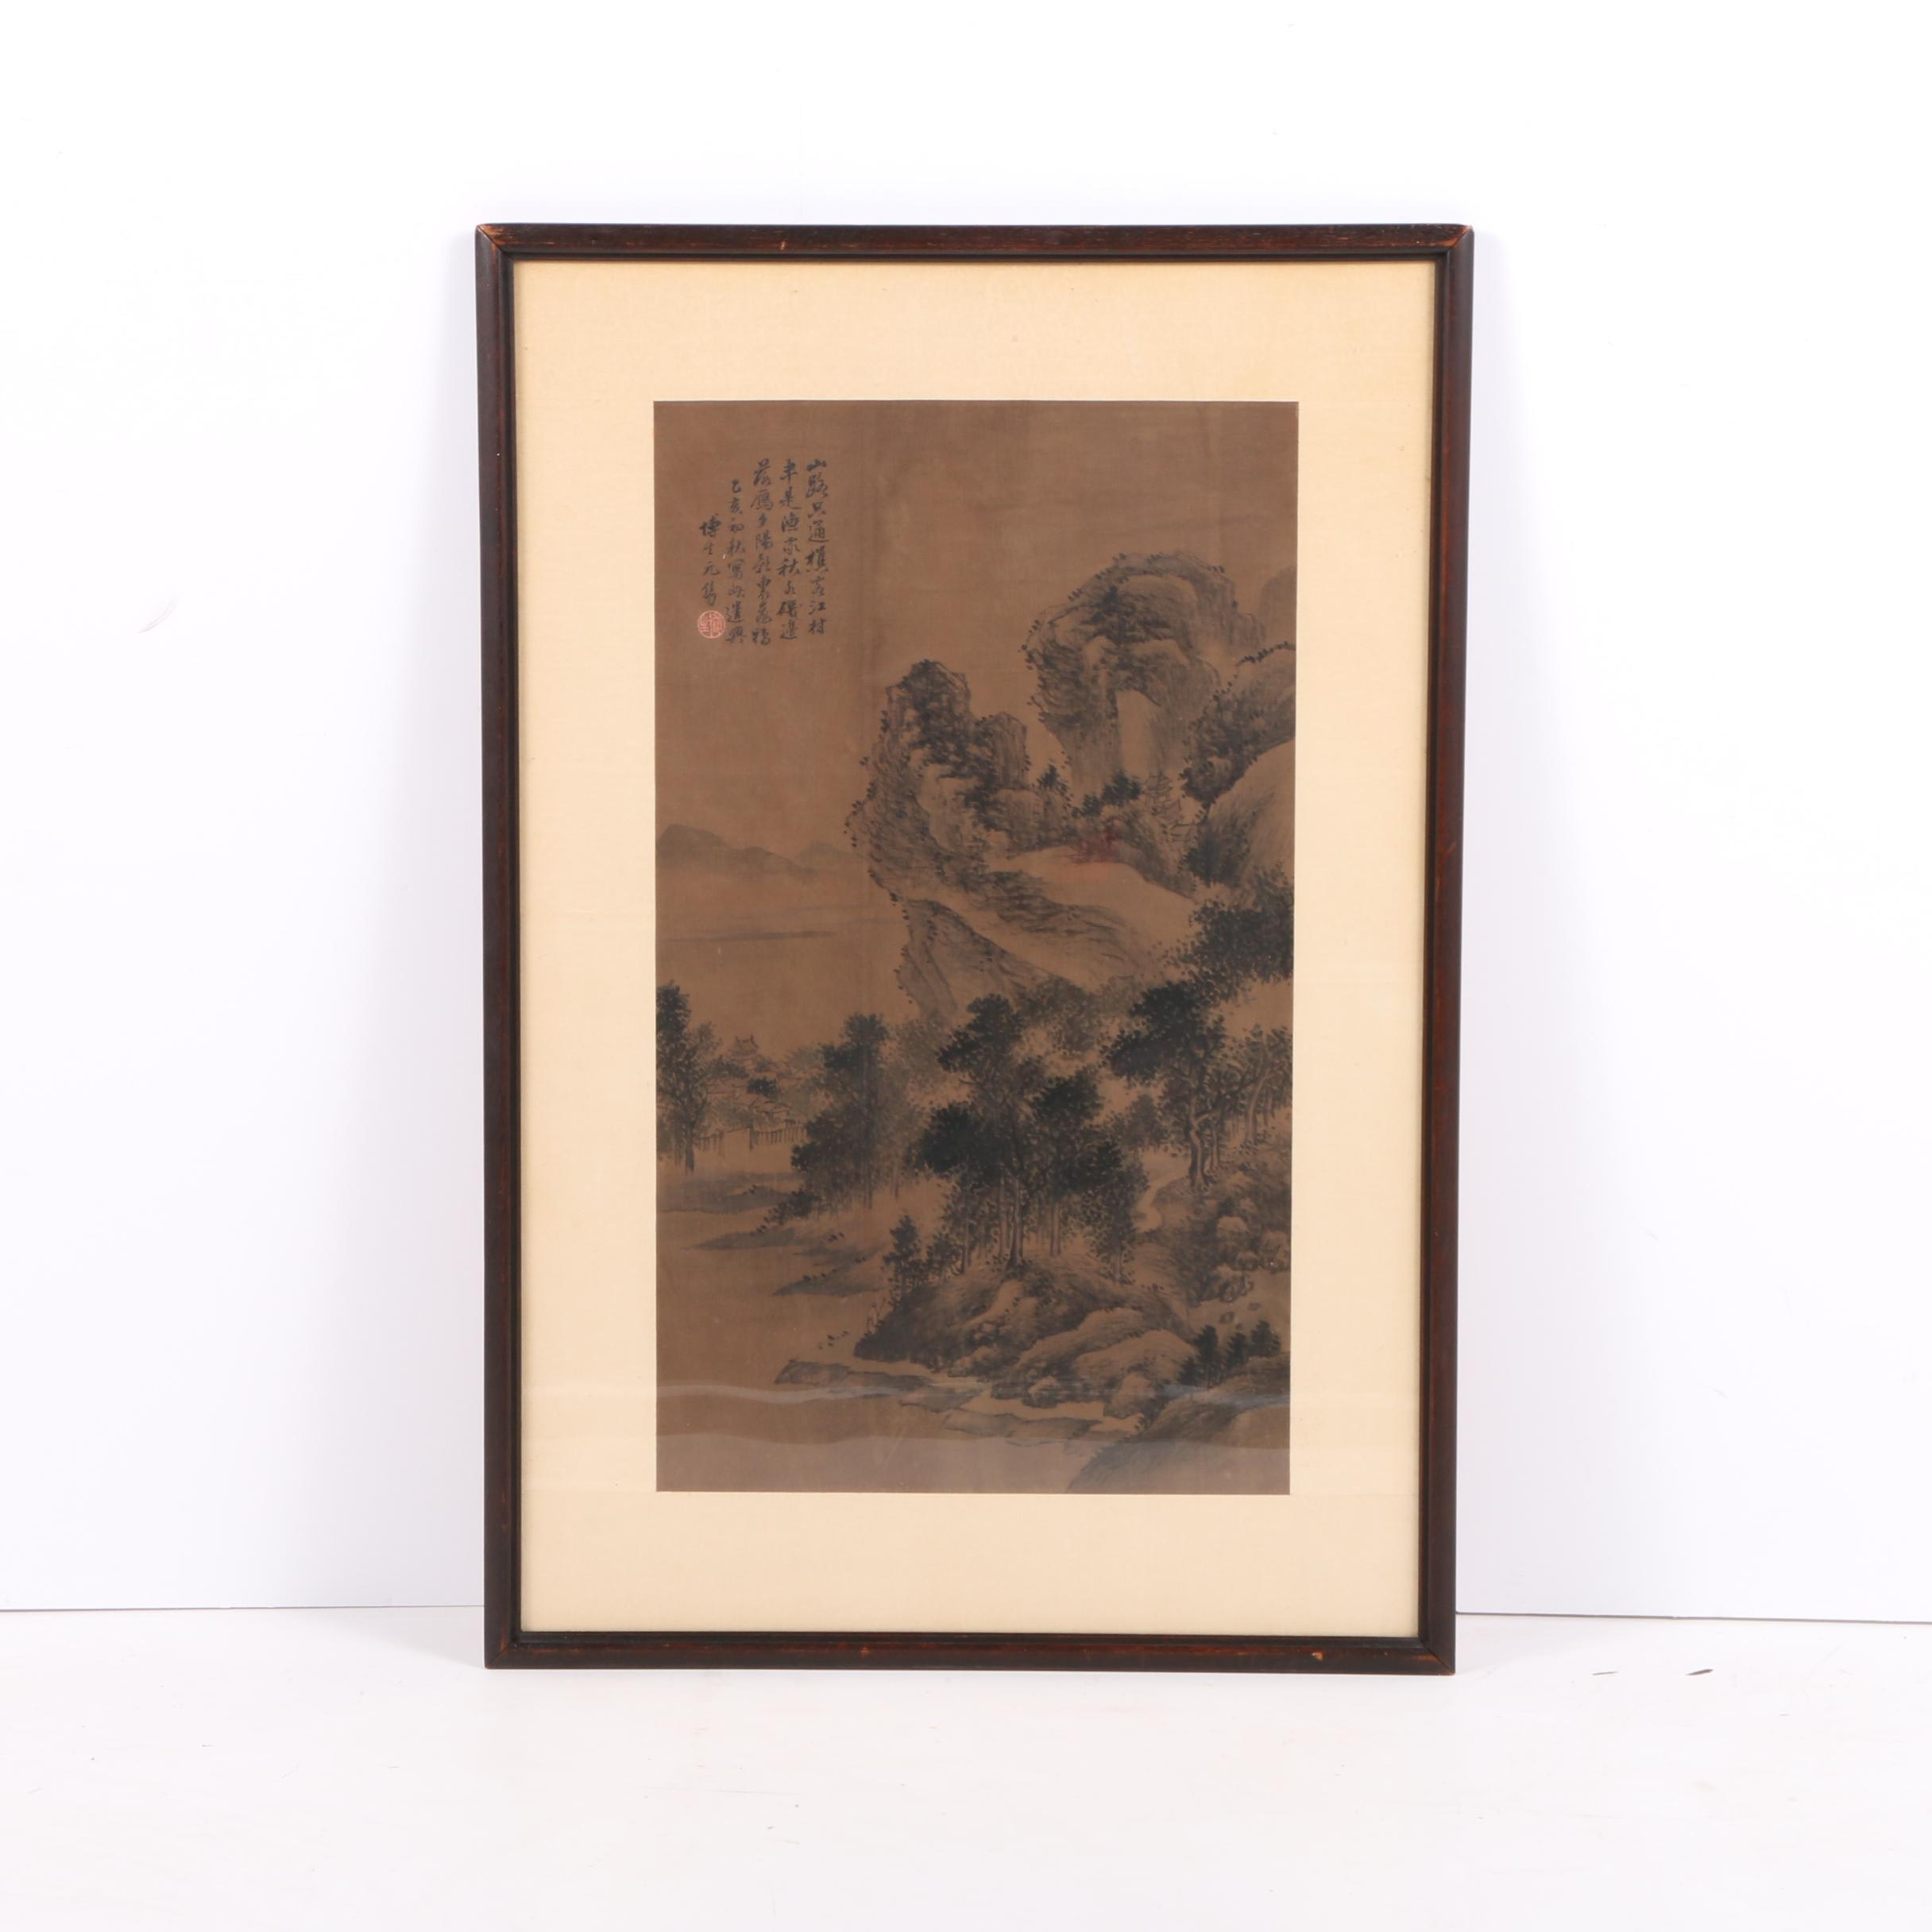 East Asian Ink Wash Landscape Painting on Linen